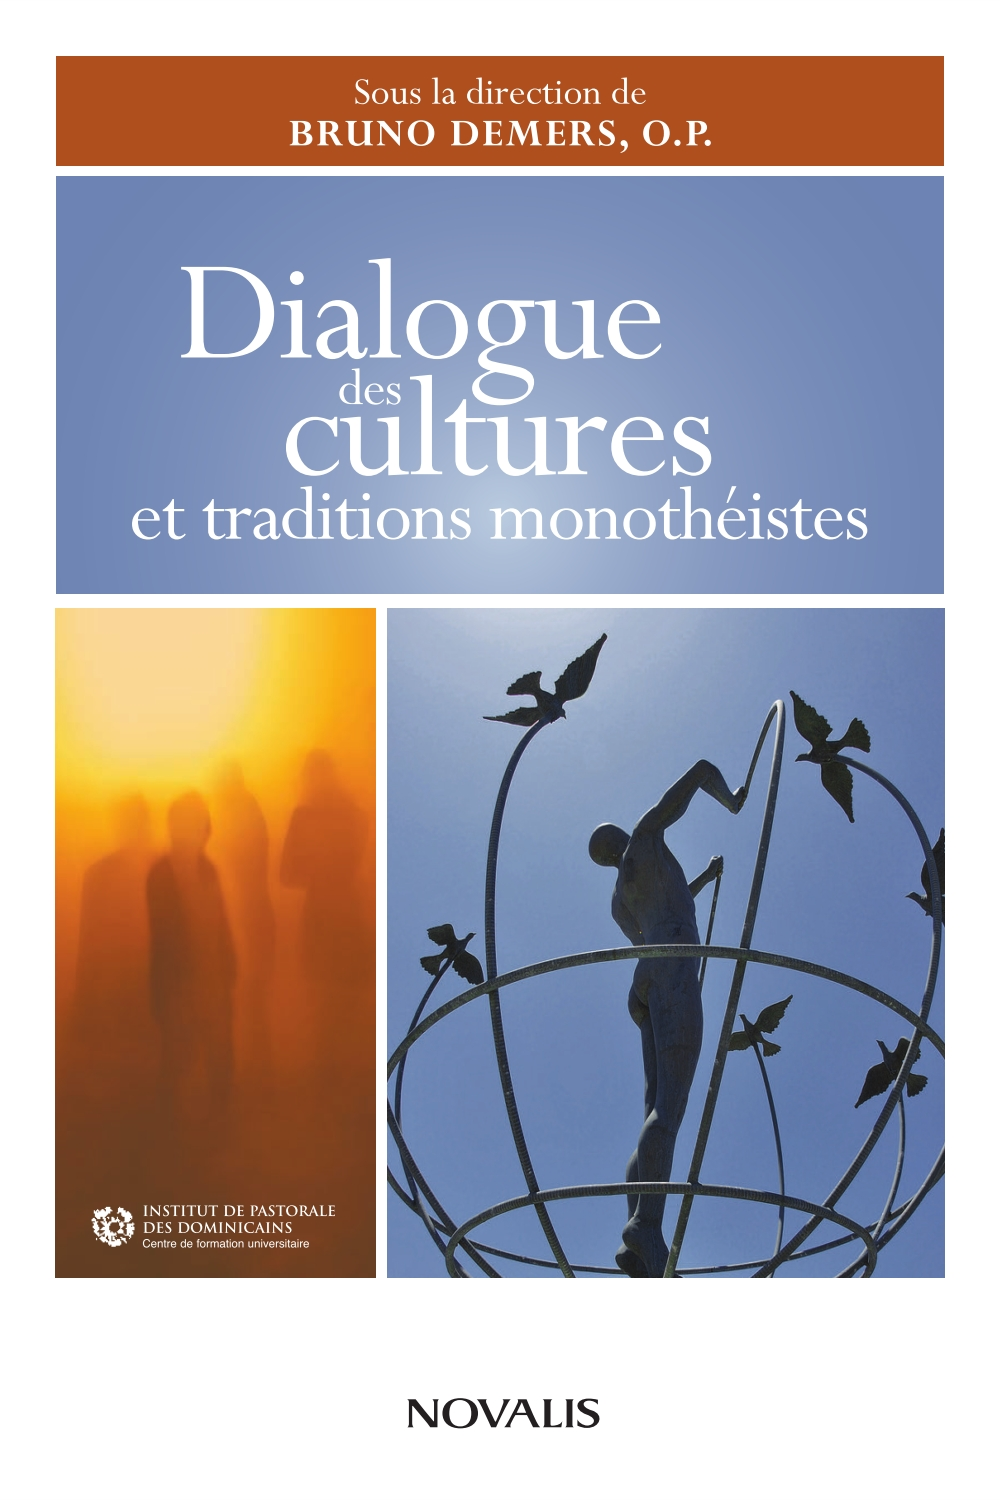 Dialogue des cultures et traditions monothéistes